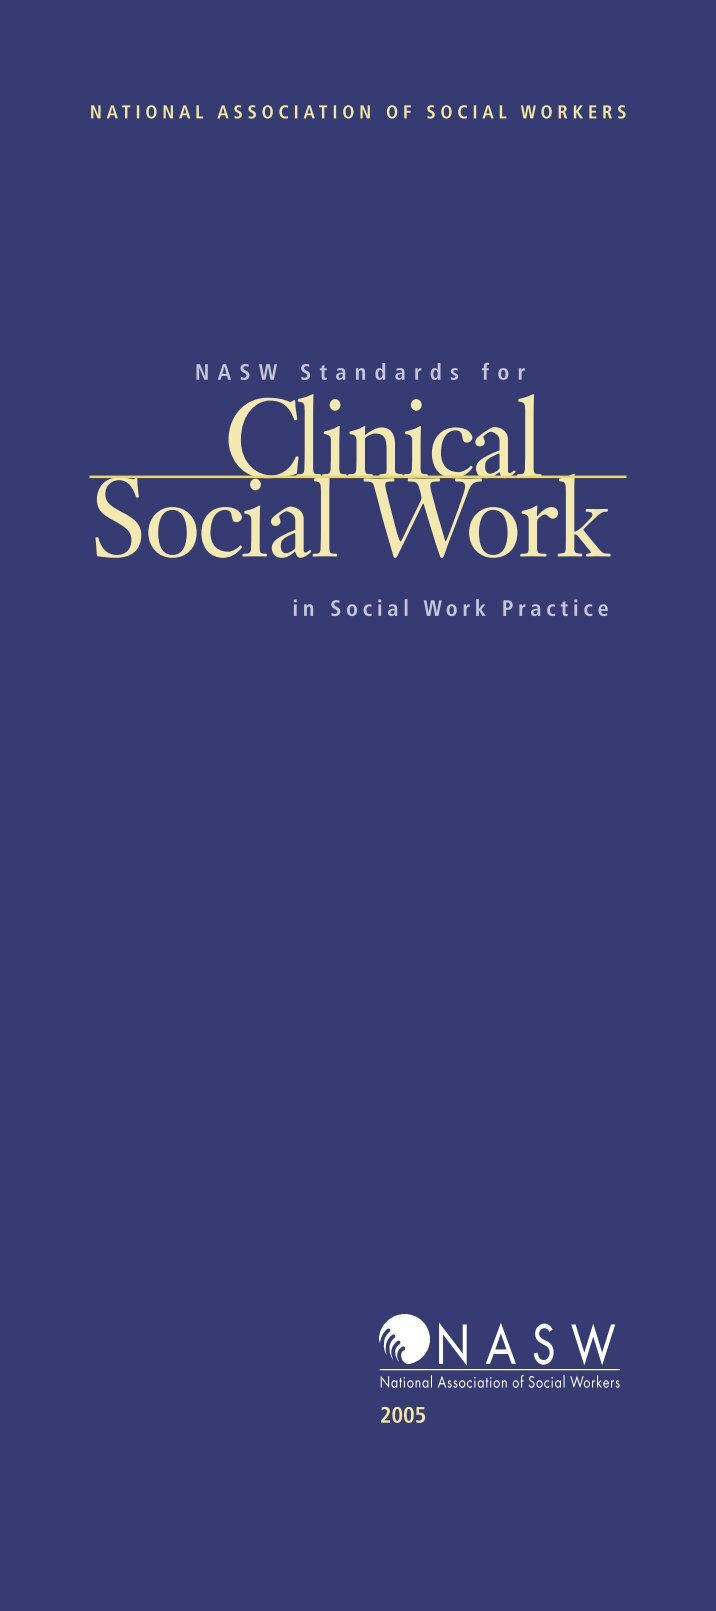 the association of social class essay Social class is more than just how much money you have it's also the clothes you wear, the music you like, the school you go to -- and has a strong influence on how you interact with others, according to the authors of a new article in current directions in psychological science, a journal of the association for psychological science.